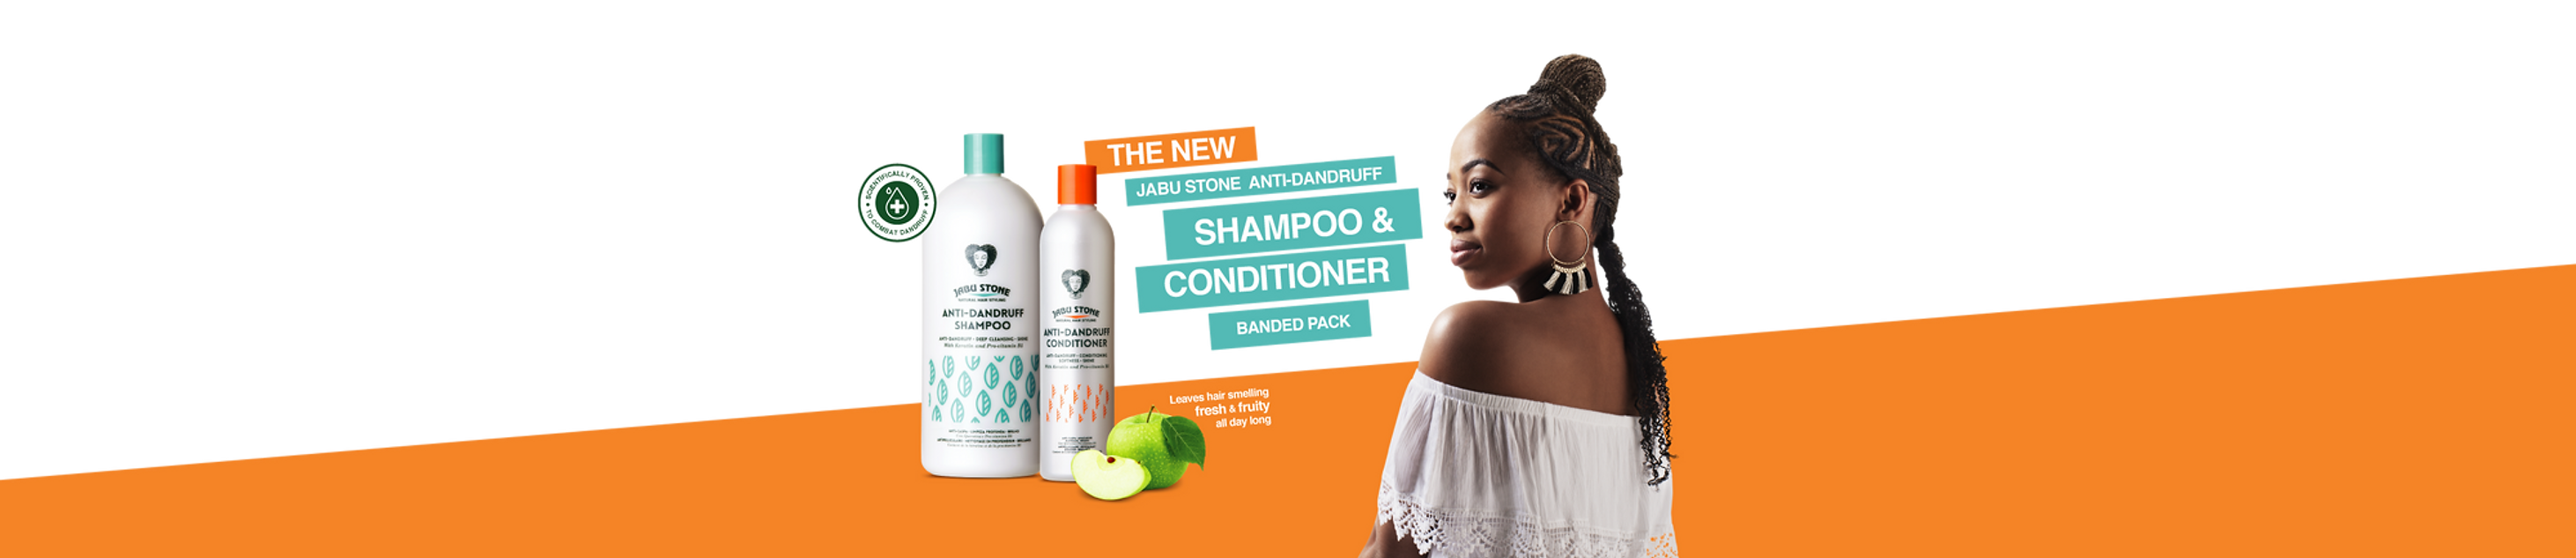 Jabu Stone Shampoo and Conditioner Promo